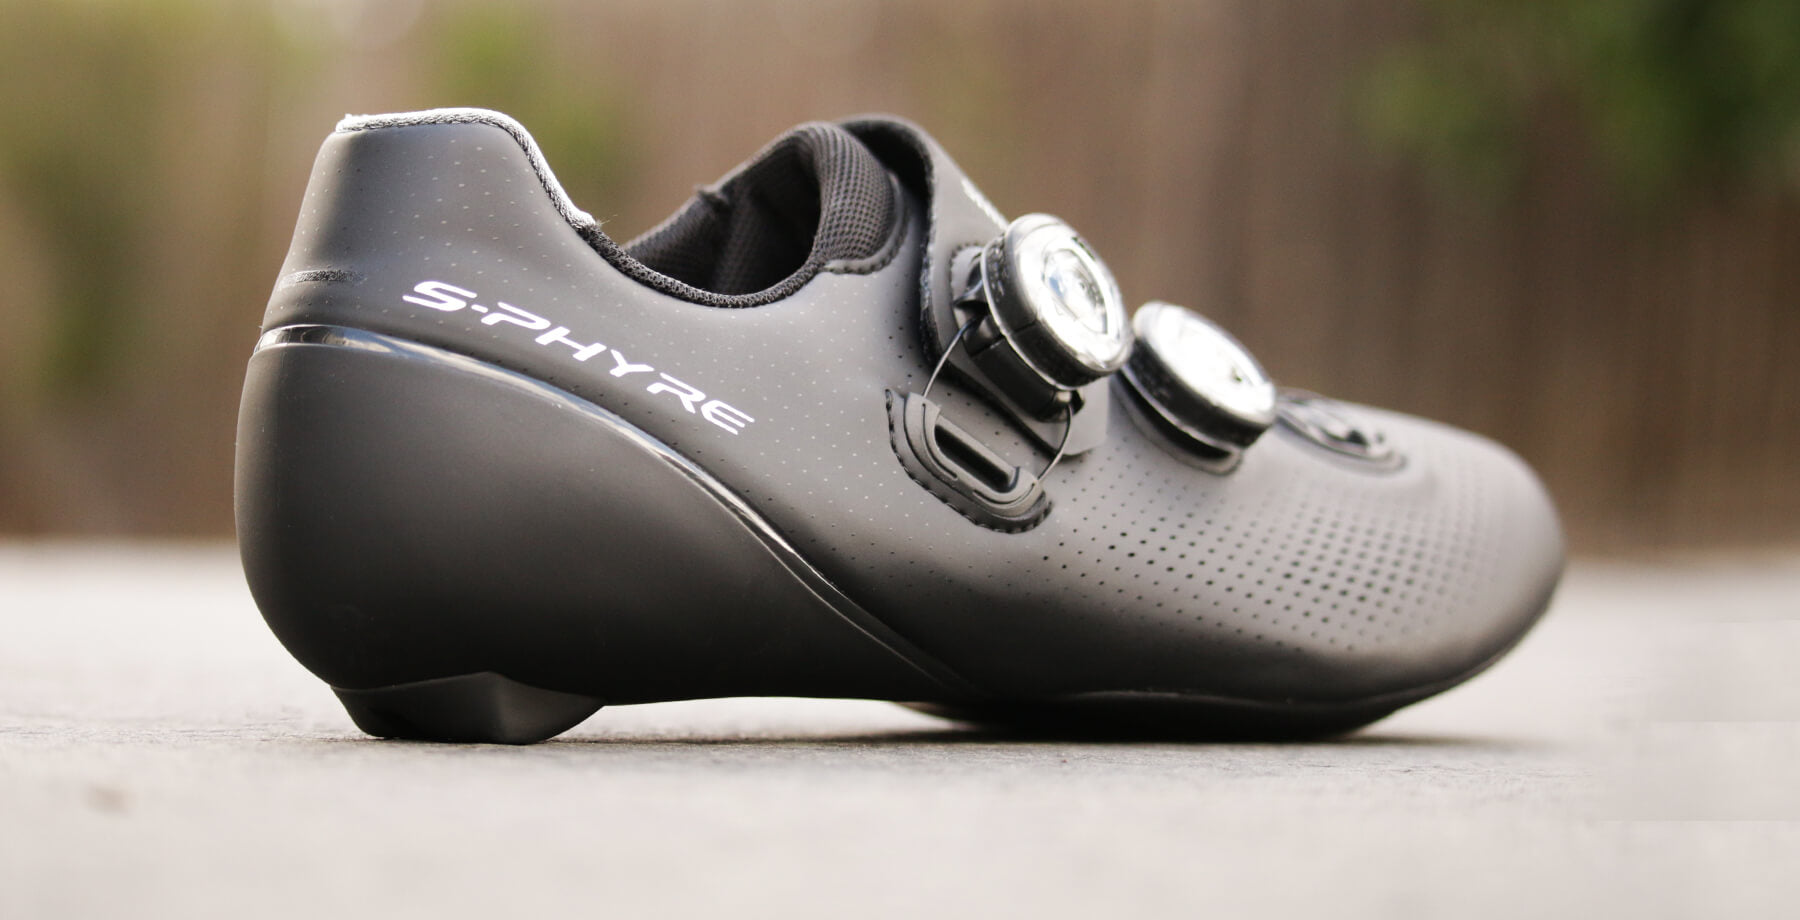 Shimano S-Phyre 901 Road Shoe Review - Contender Bicycles